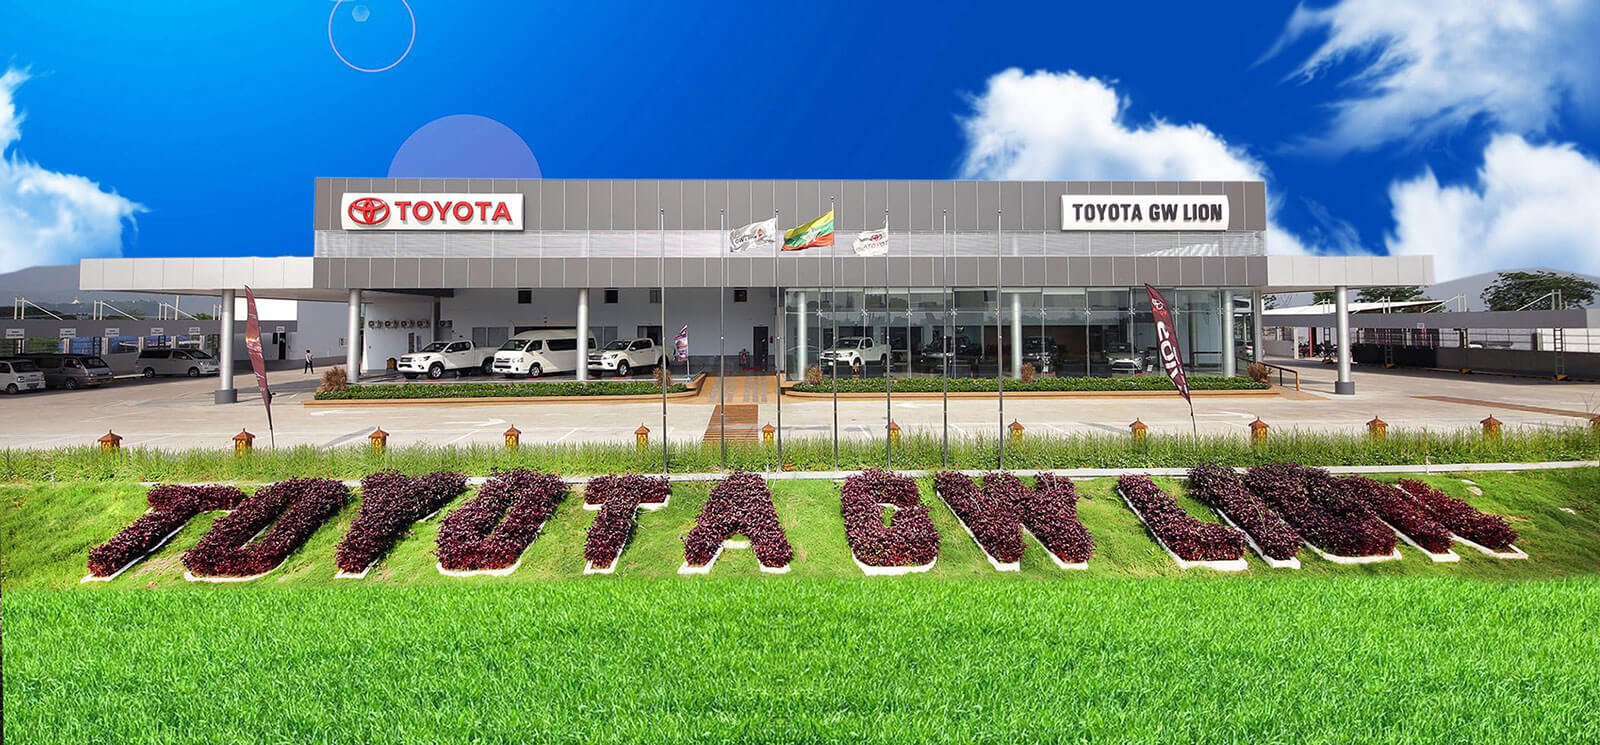 TOYOTA GW LION'S showroom